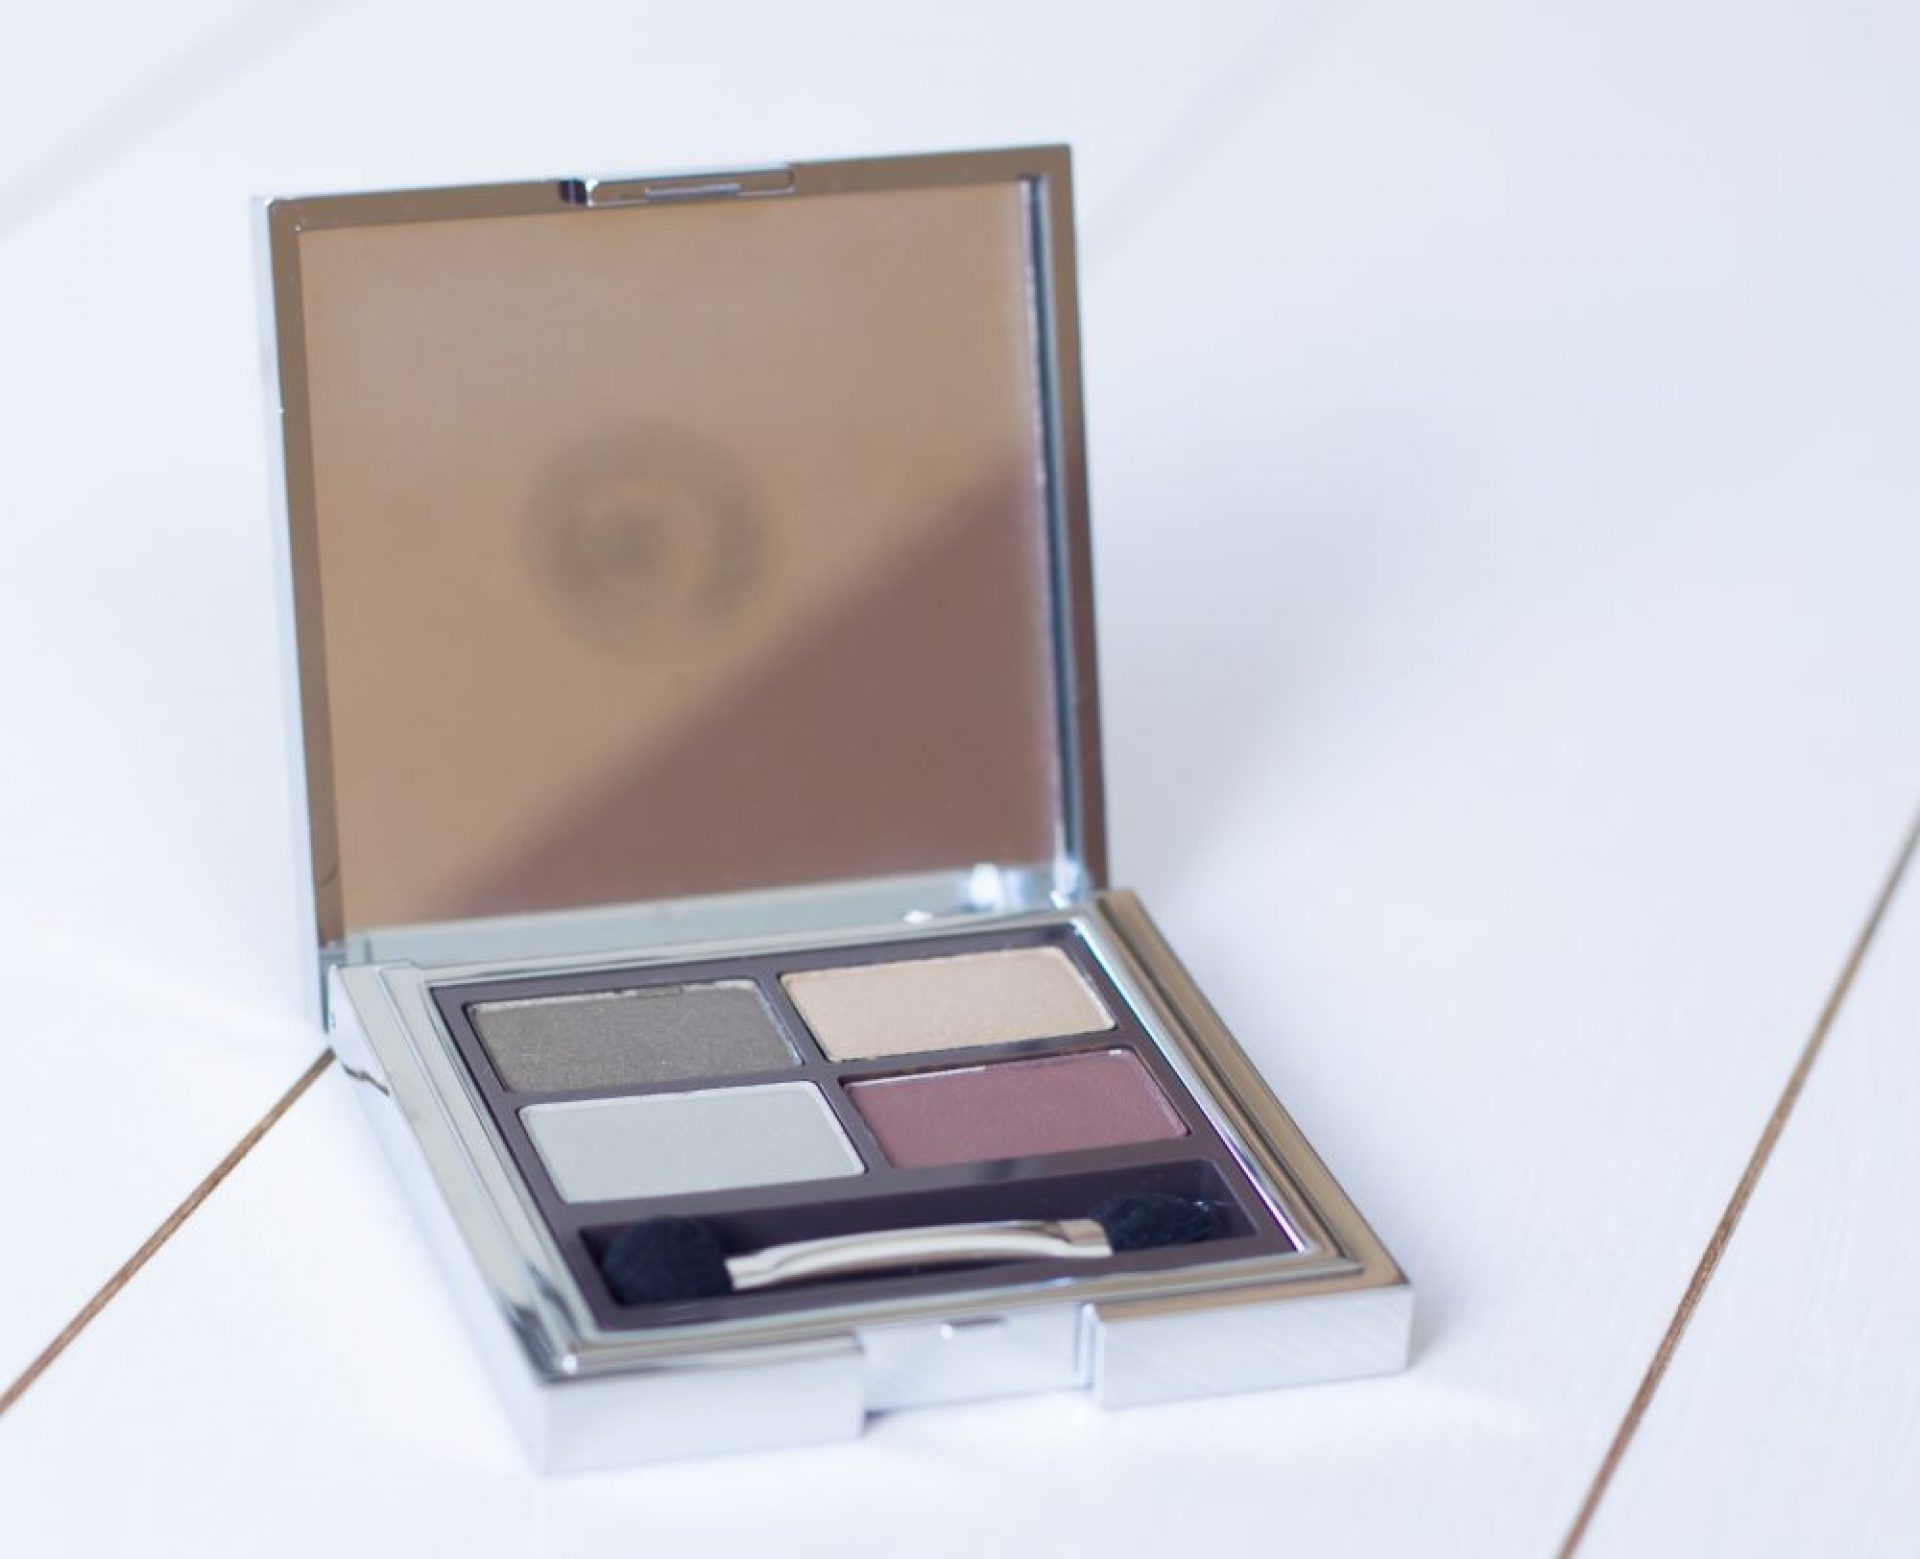 Eyeshadow palette - Limited Edition special StyleTone box